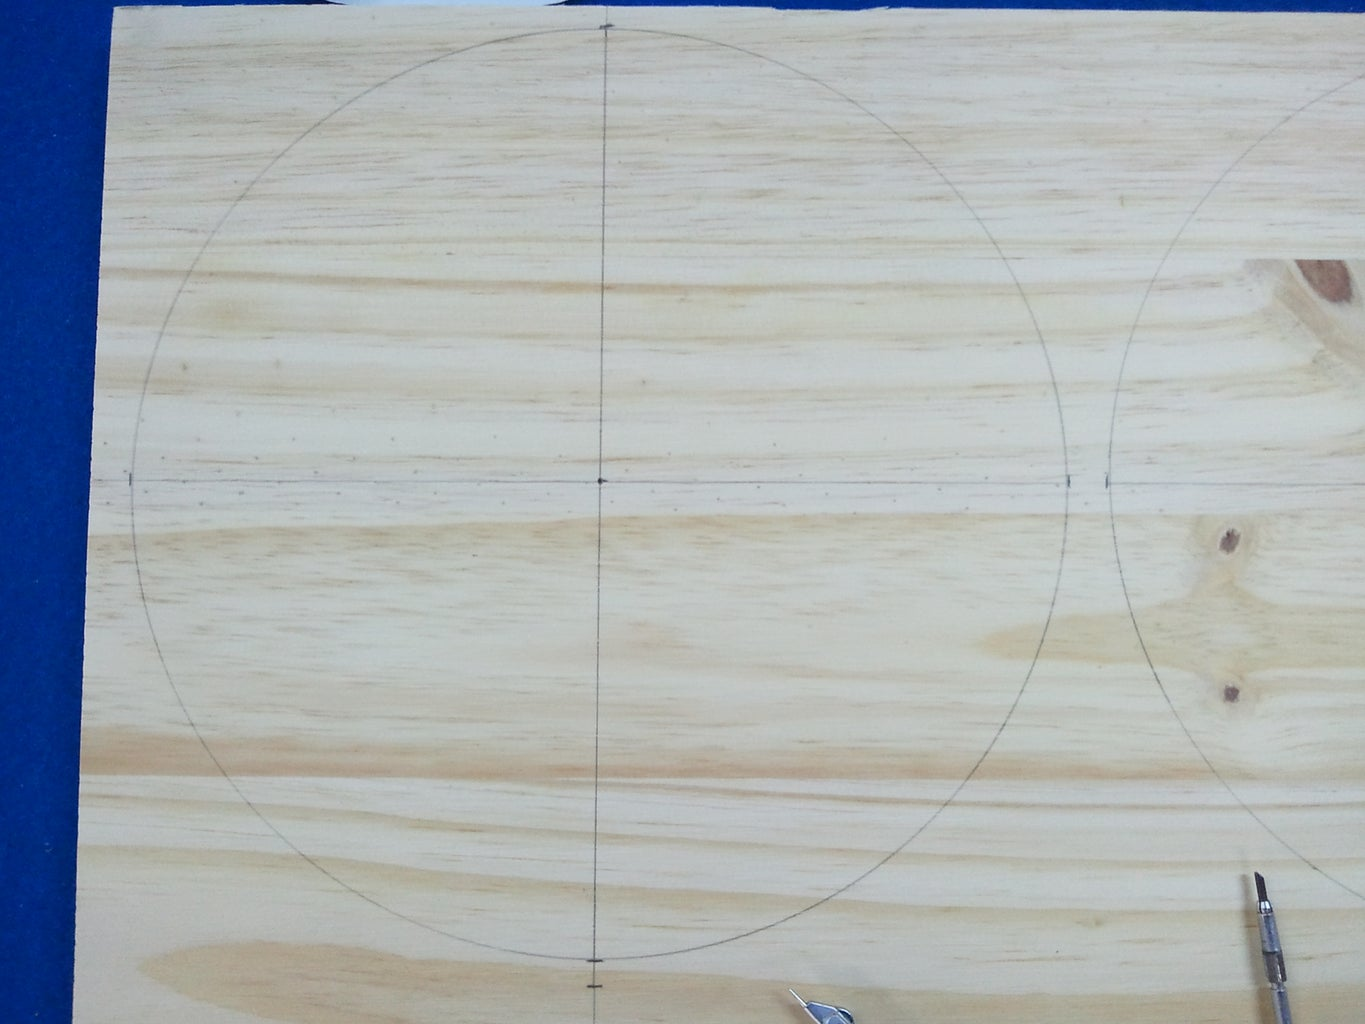 Cutting Out the Wooden Circles